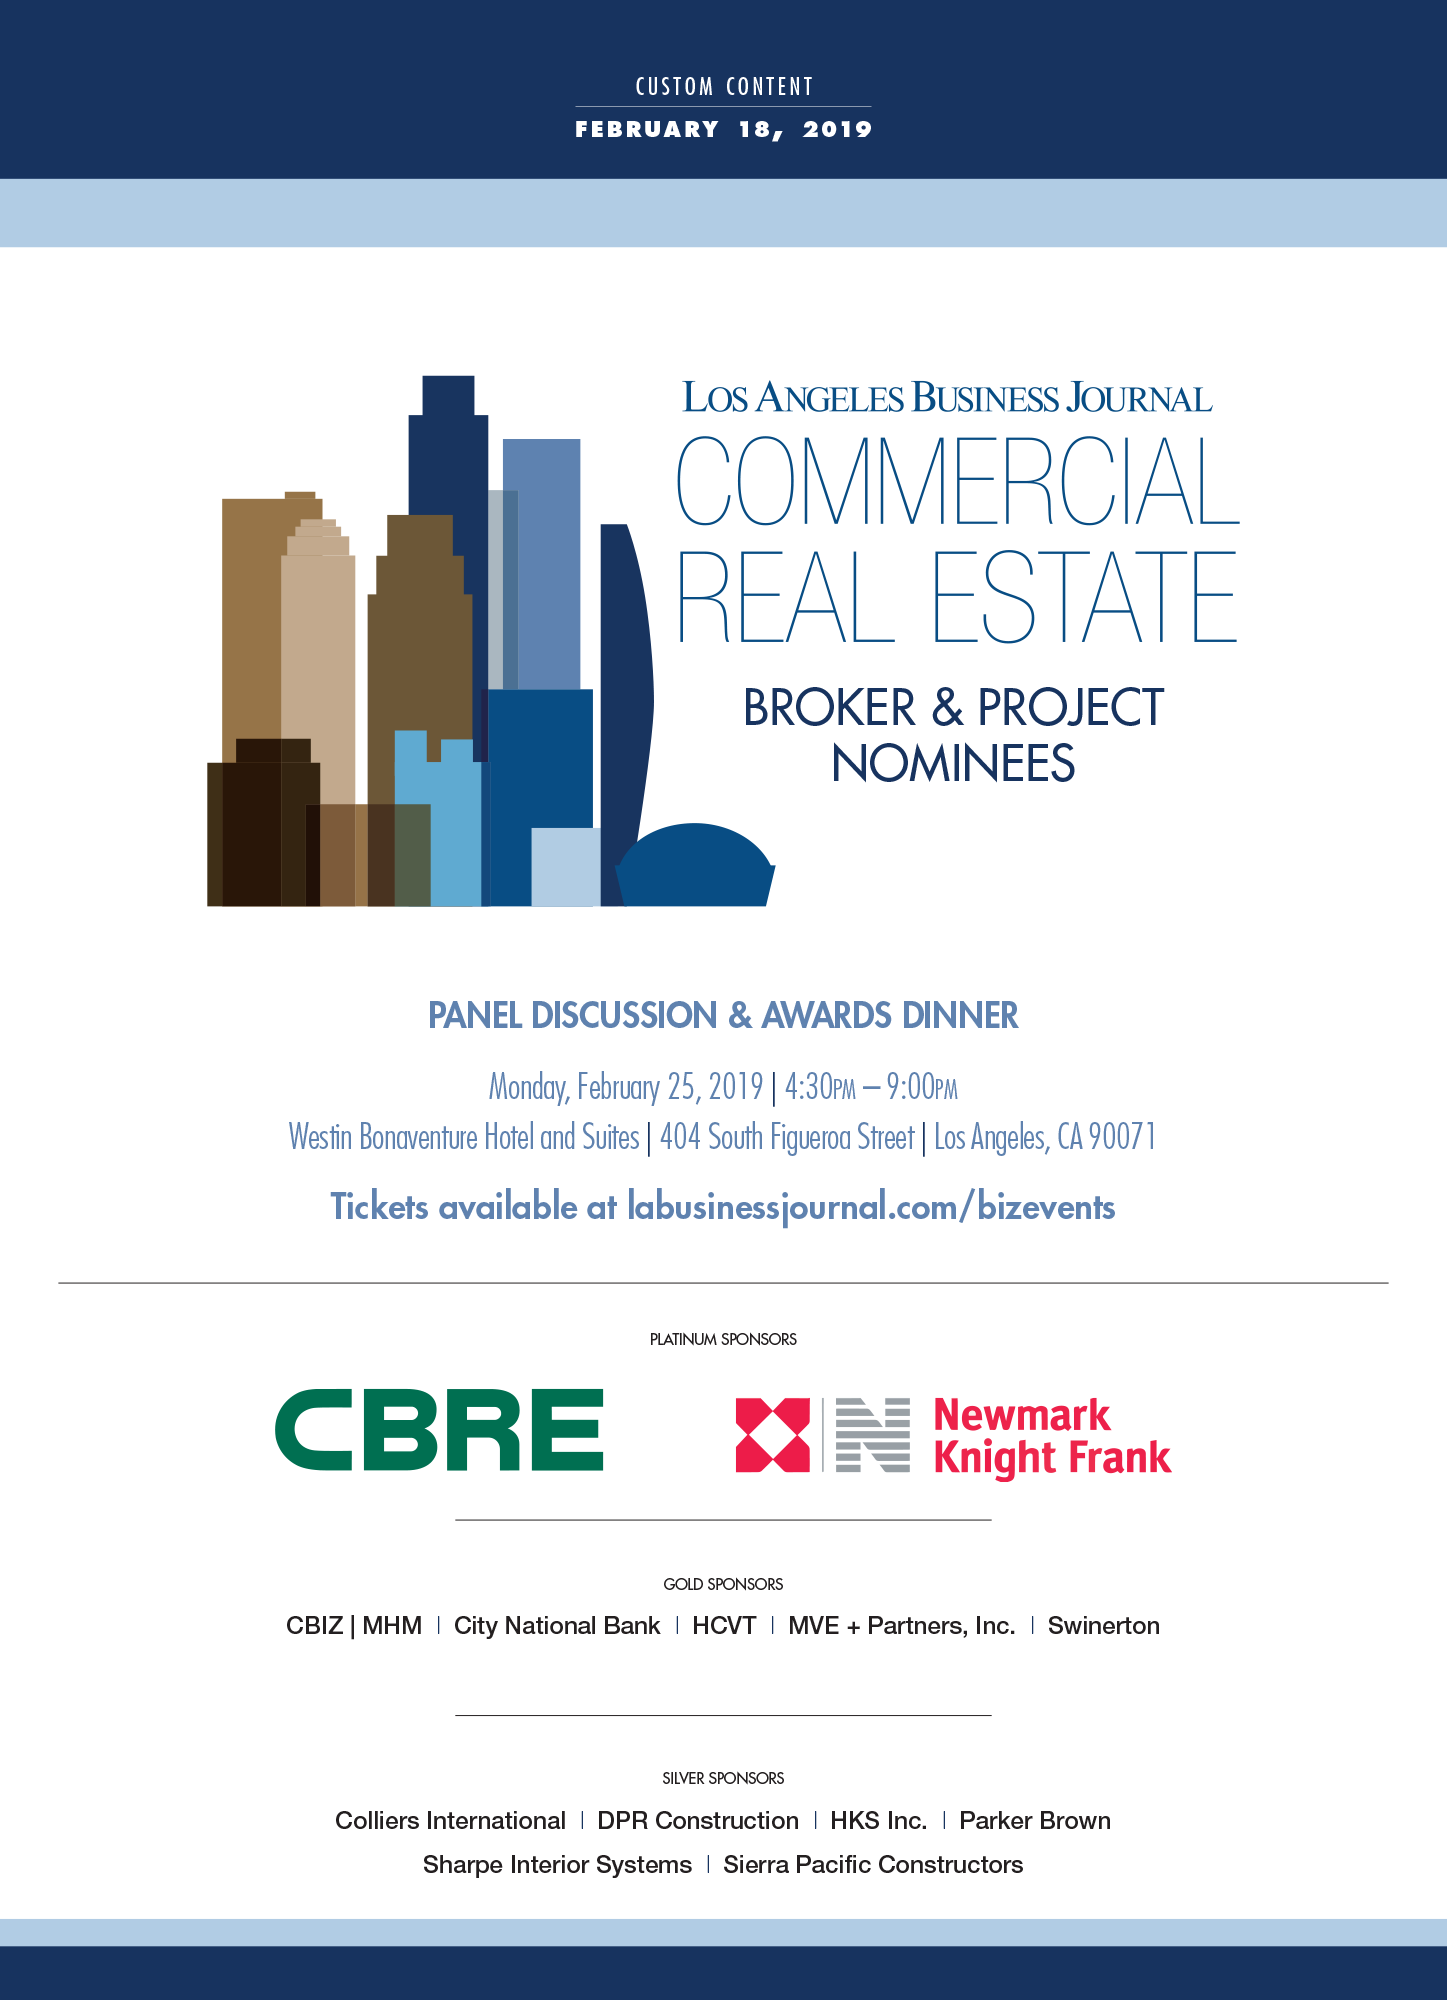 Commercial Real Estate Awards Los Angeles Business Journal